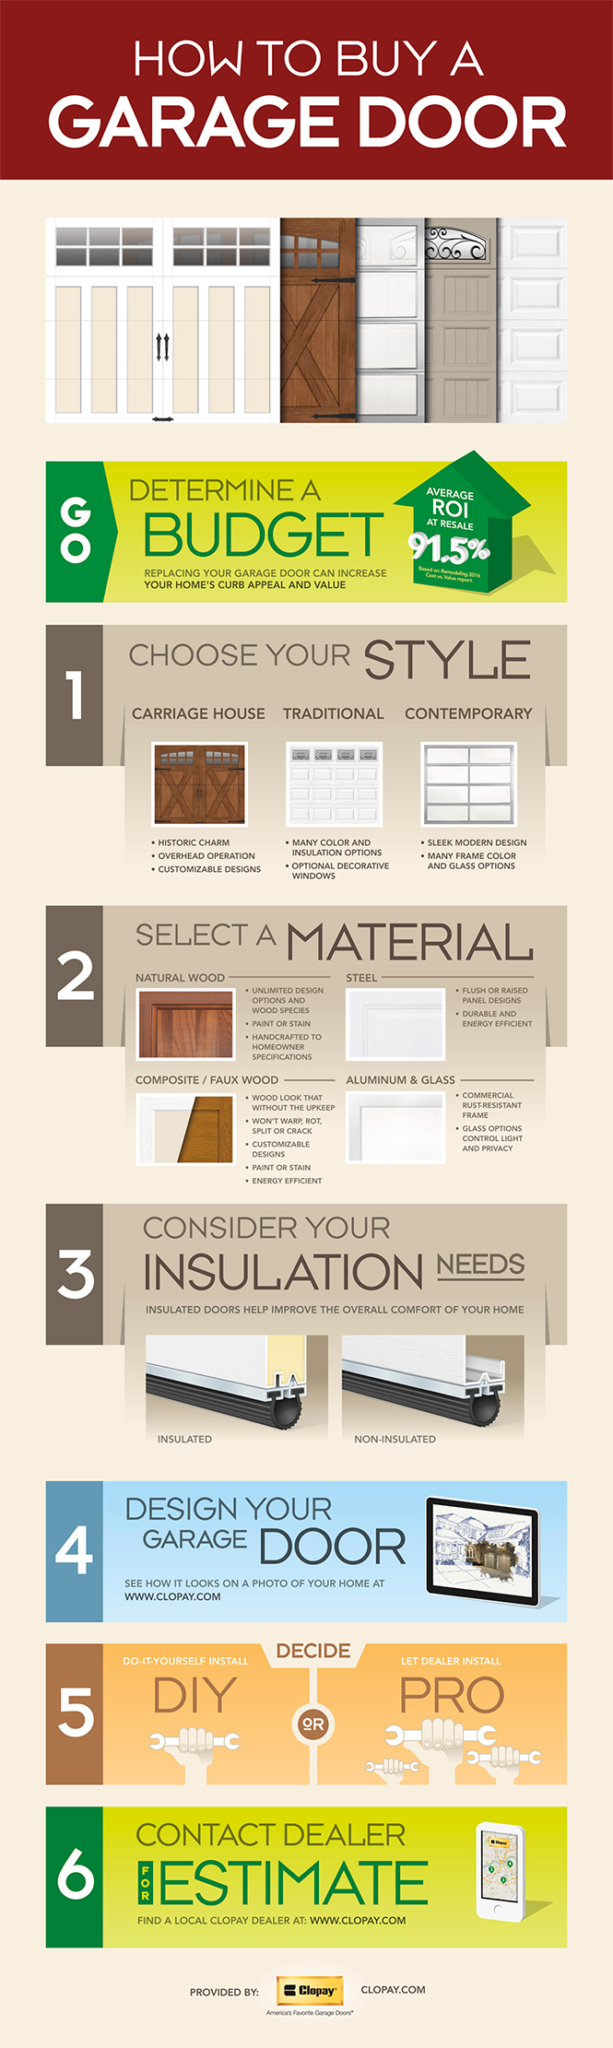 How to Buy a Garage Door Infographic